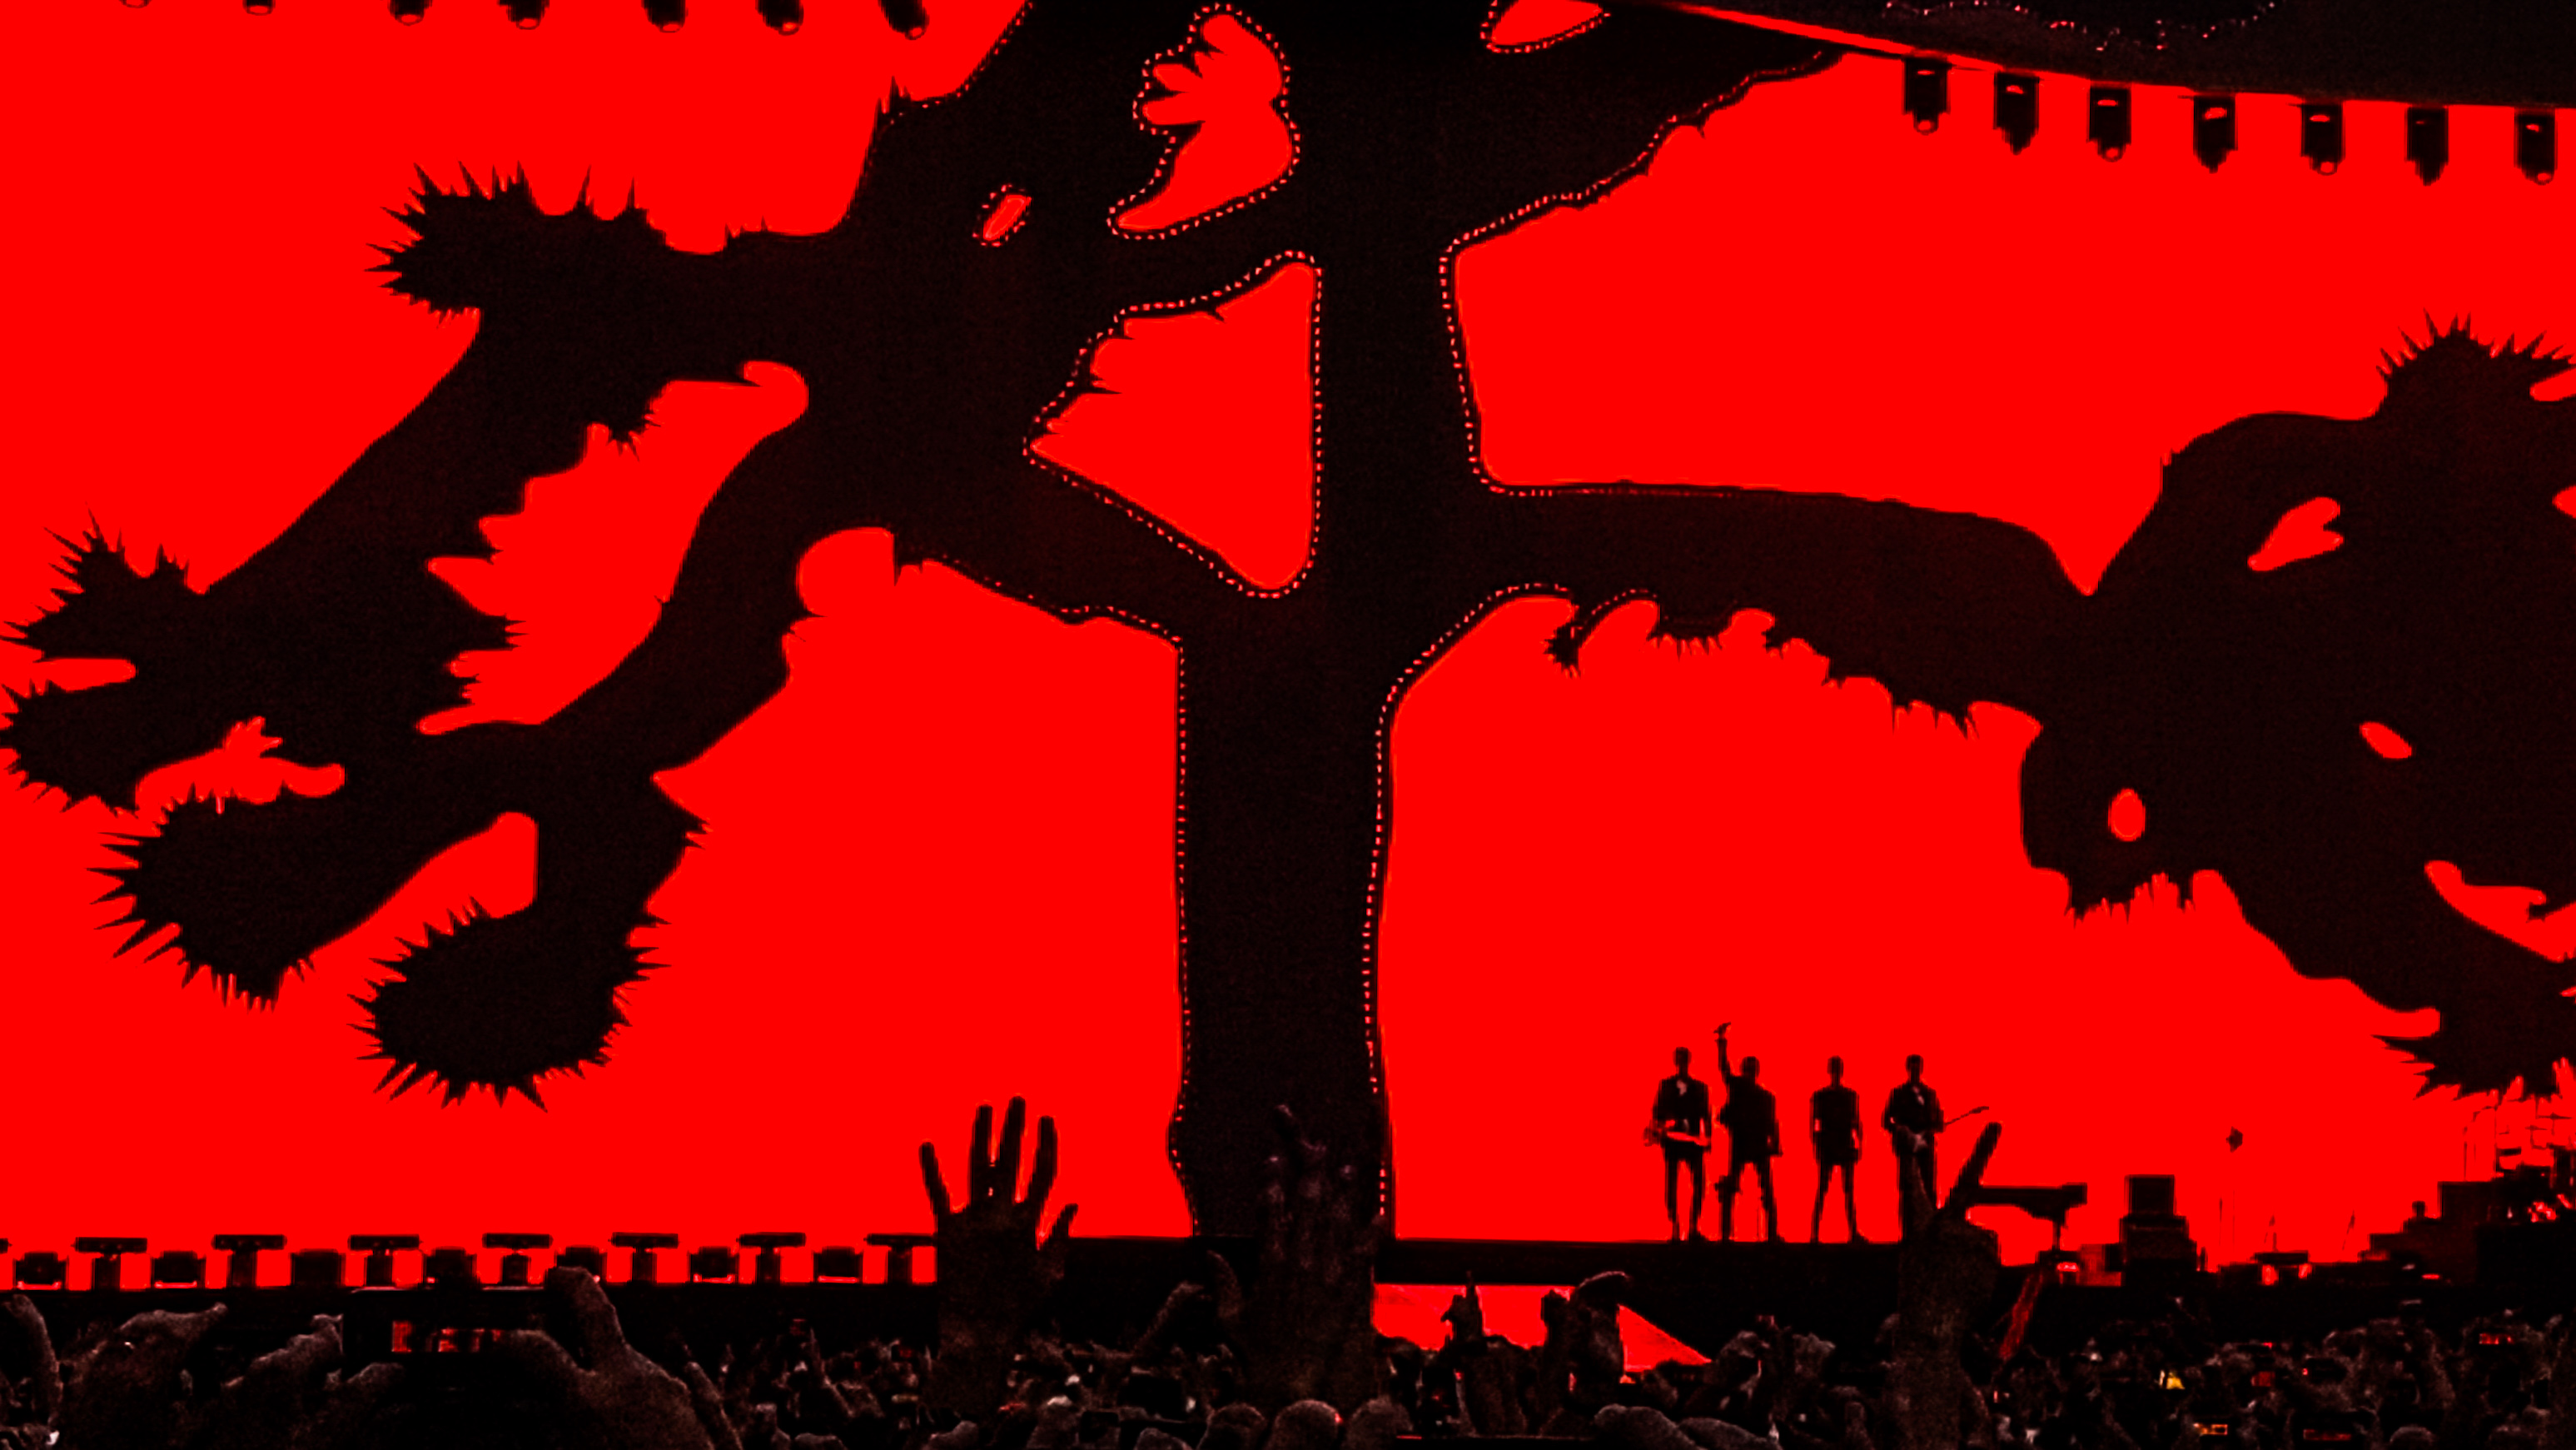 U2 announces Australian dates for Joshua Tree tour